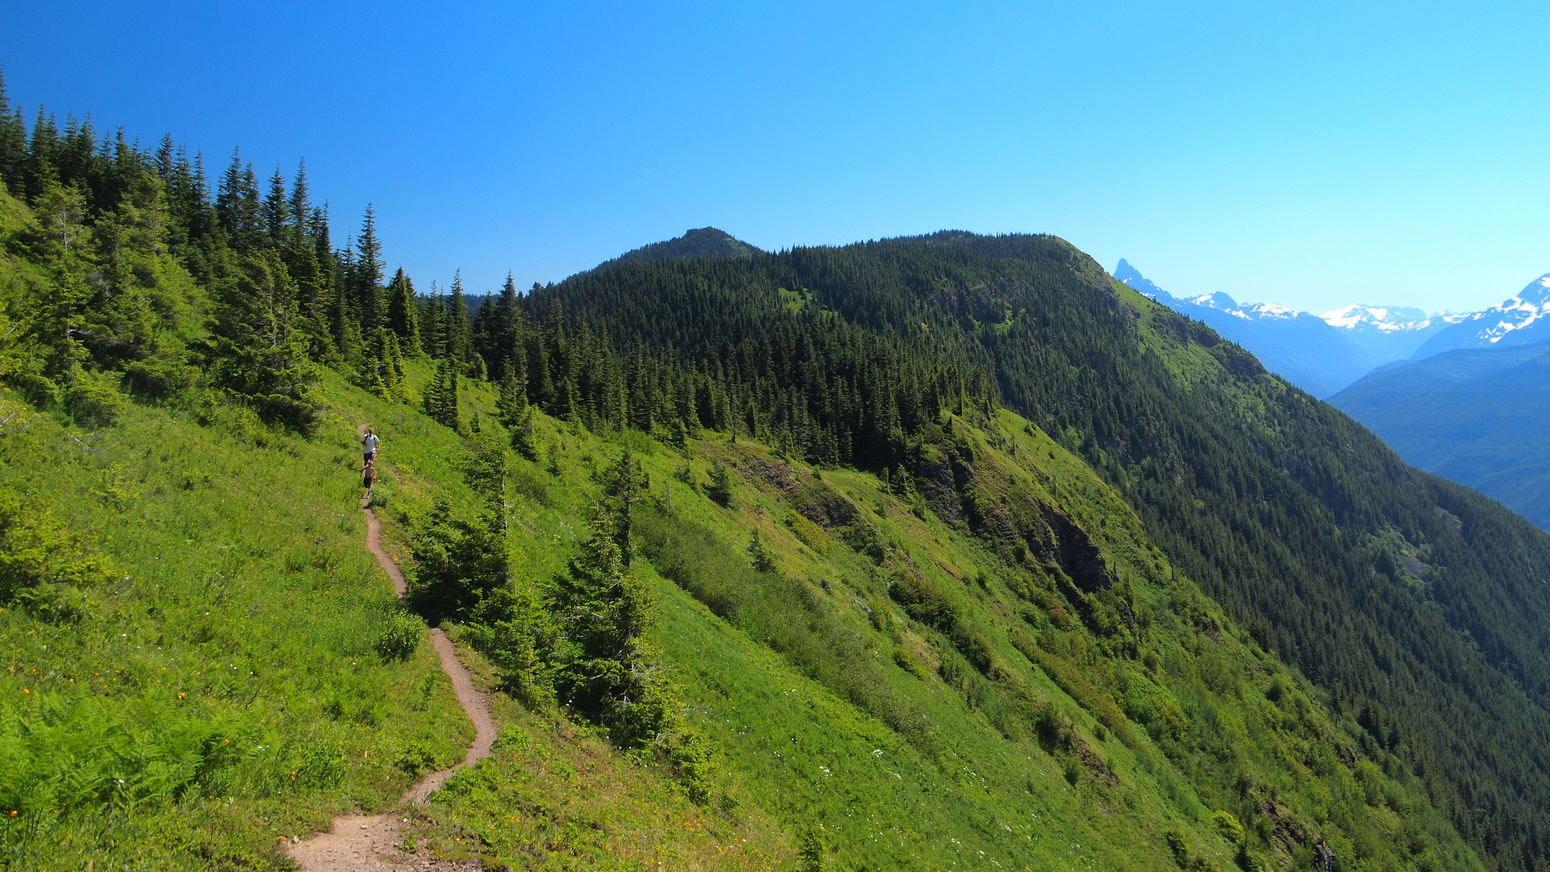 Josh and Serge coming back up to Elk Mountain. On the right is the middle bump and the high point in the back ground is Thurston Mountain.